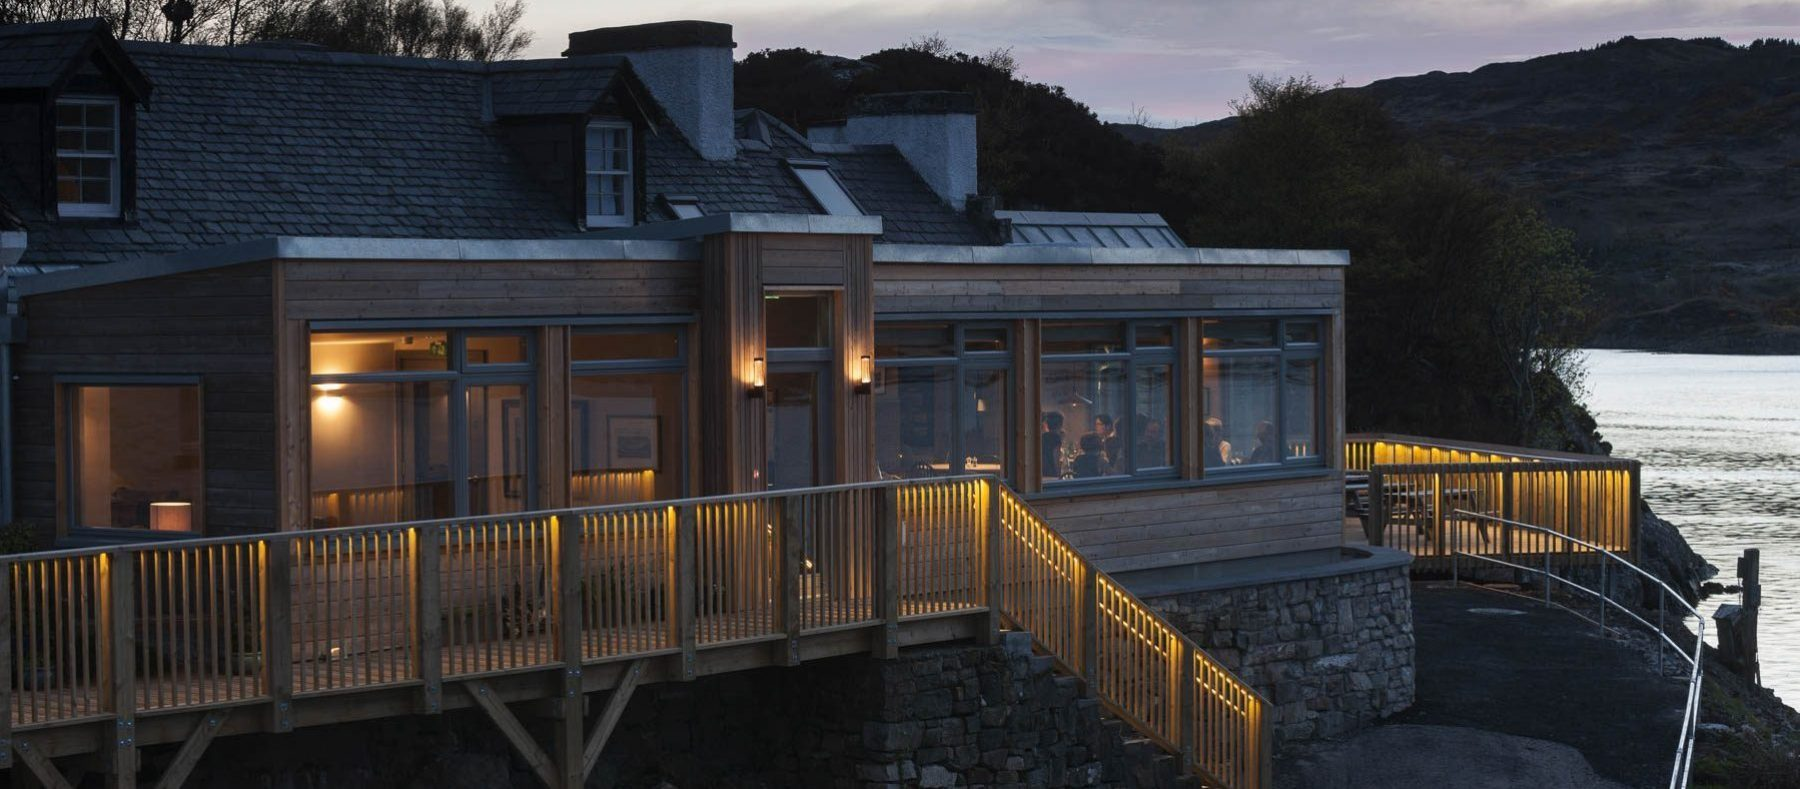 Kylesku Hotel - accommodation and dining by Loch Gleann Dubh